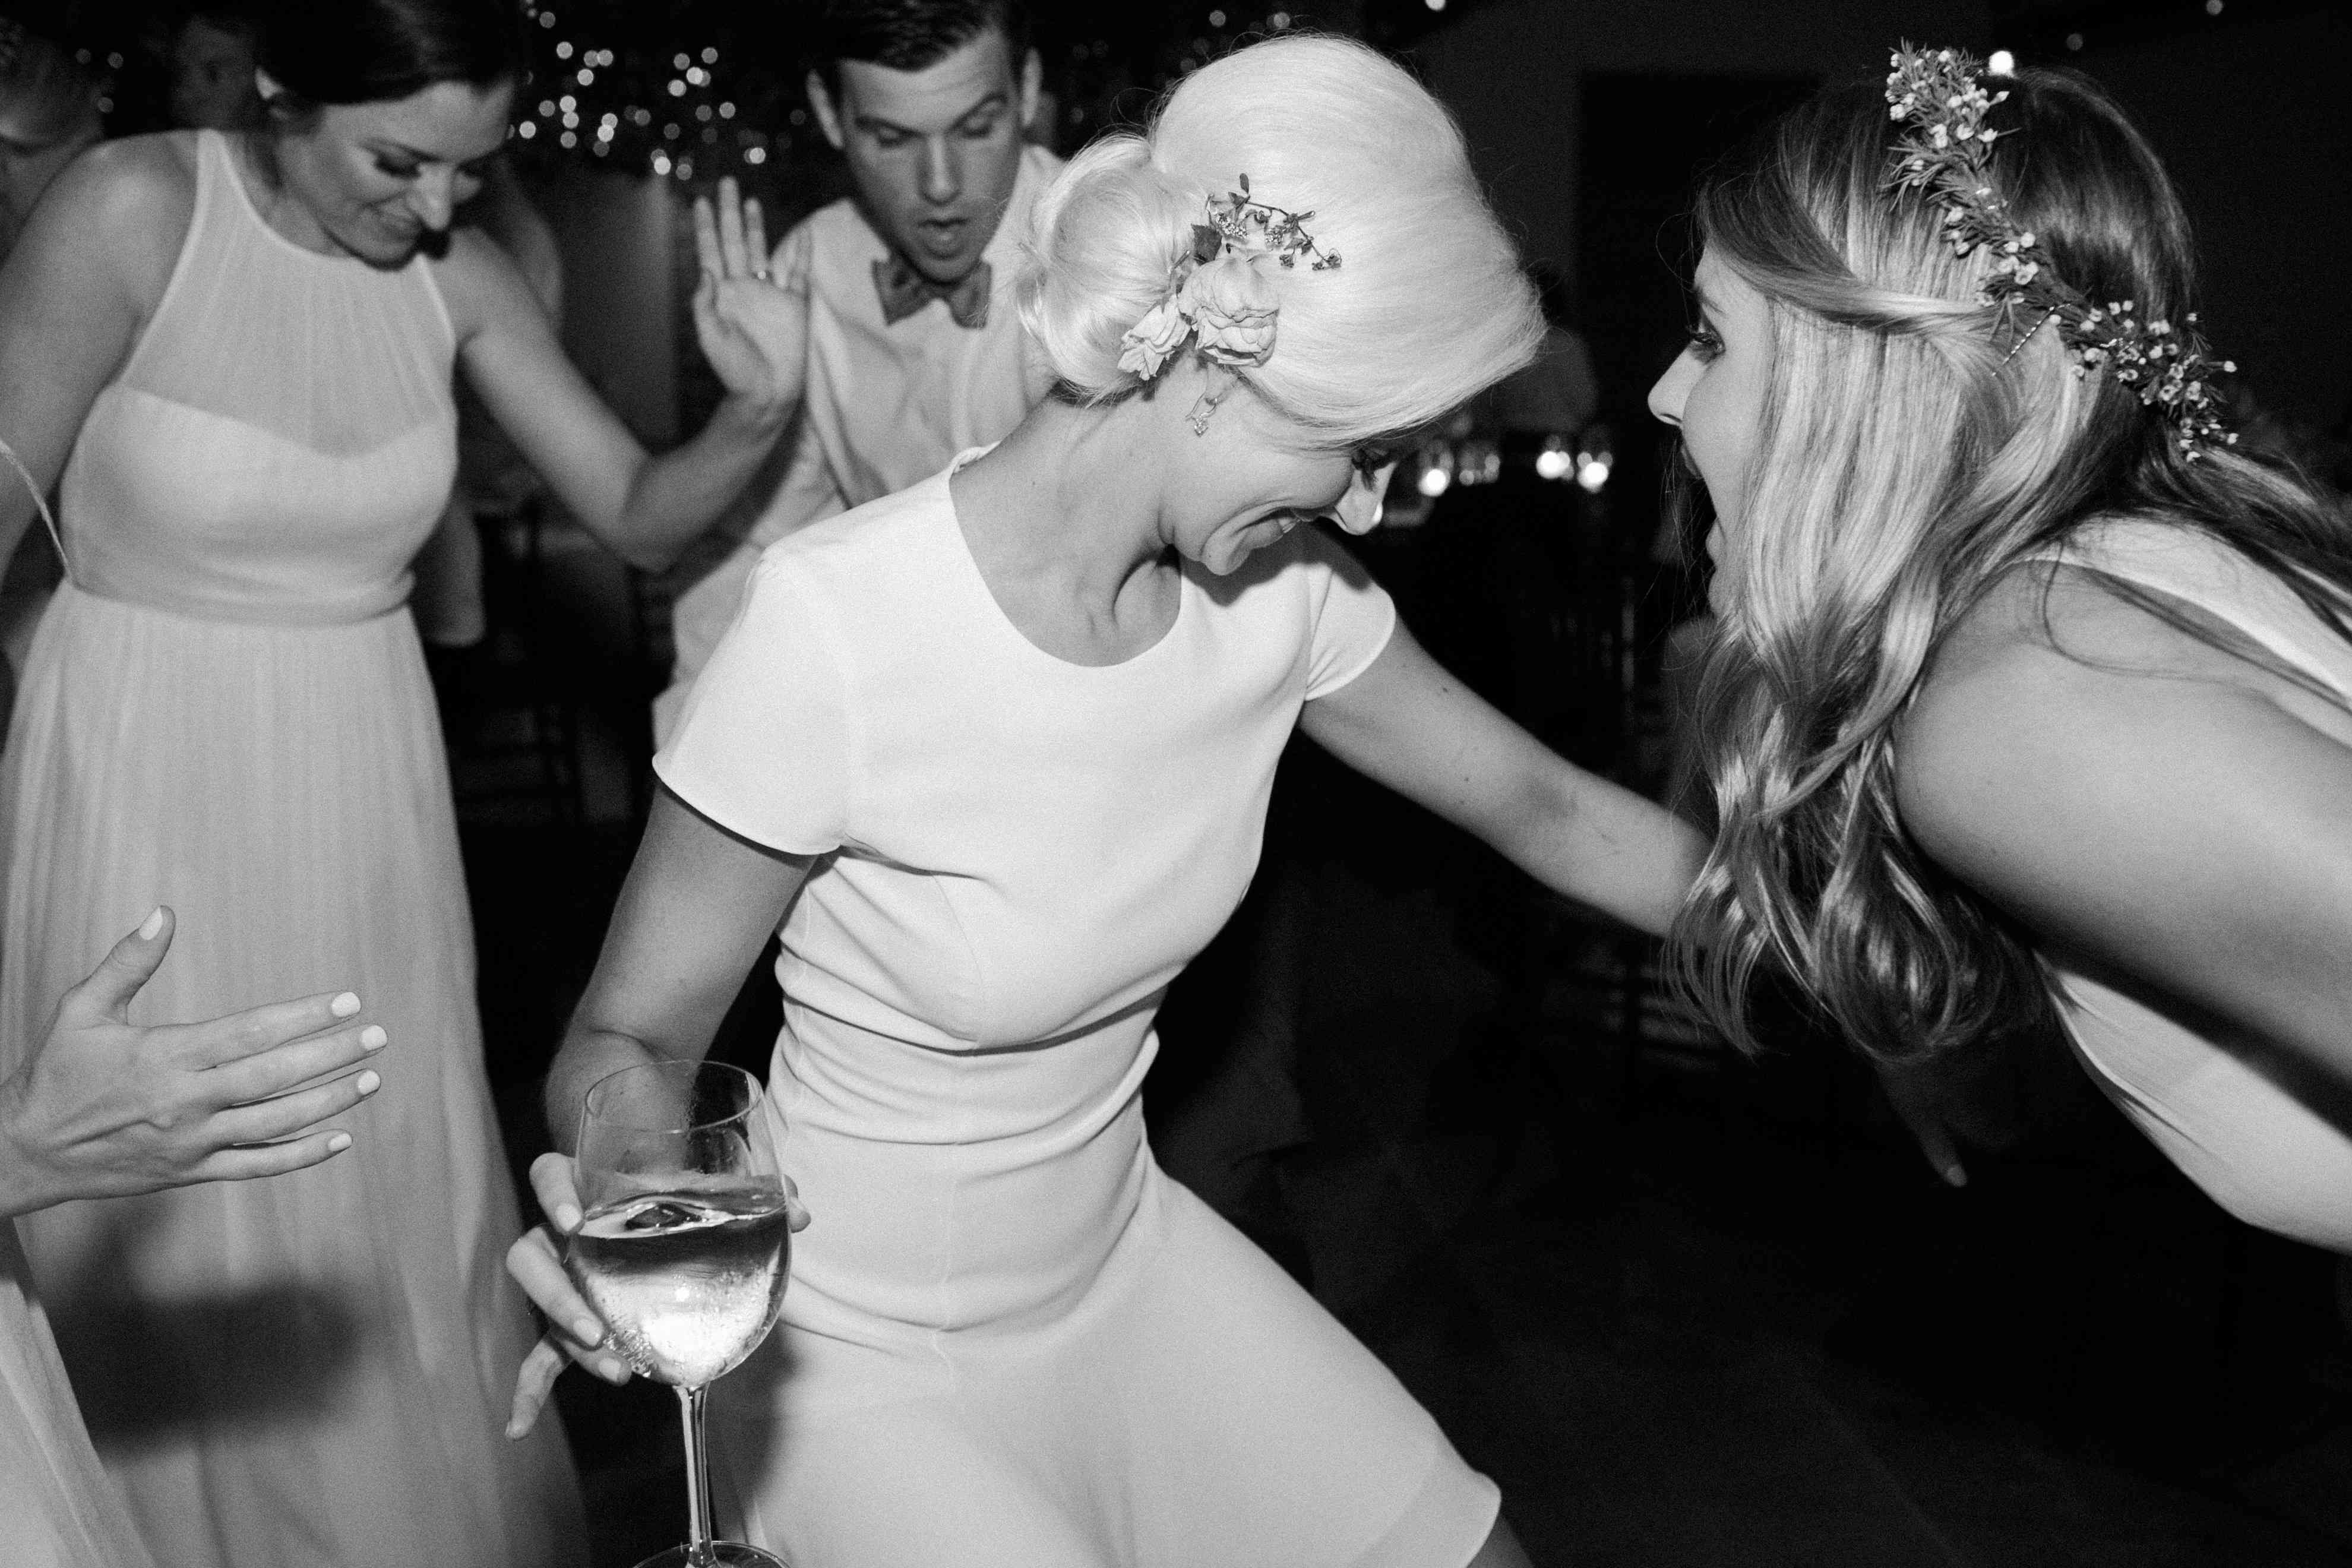 <p>Bride dancing with wine glass</p><br><br>